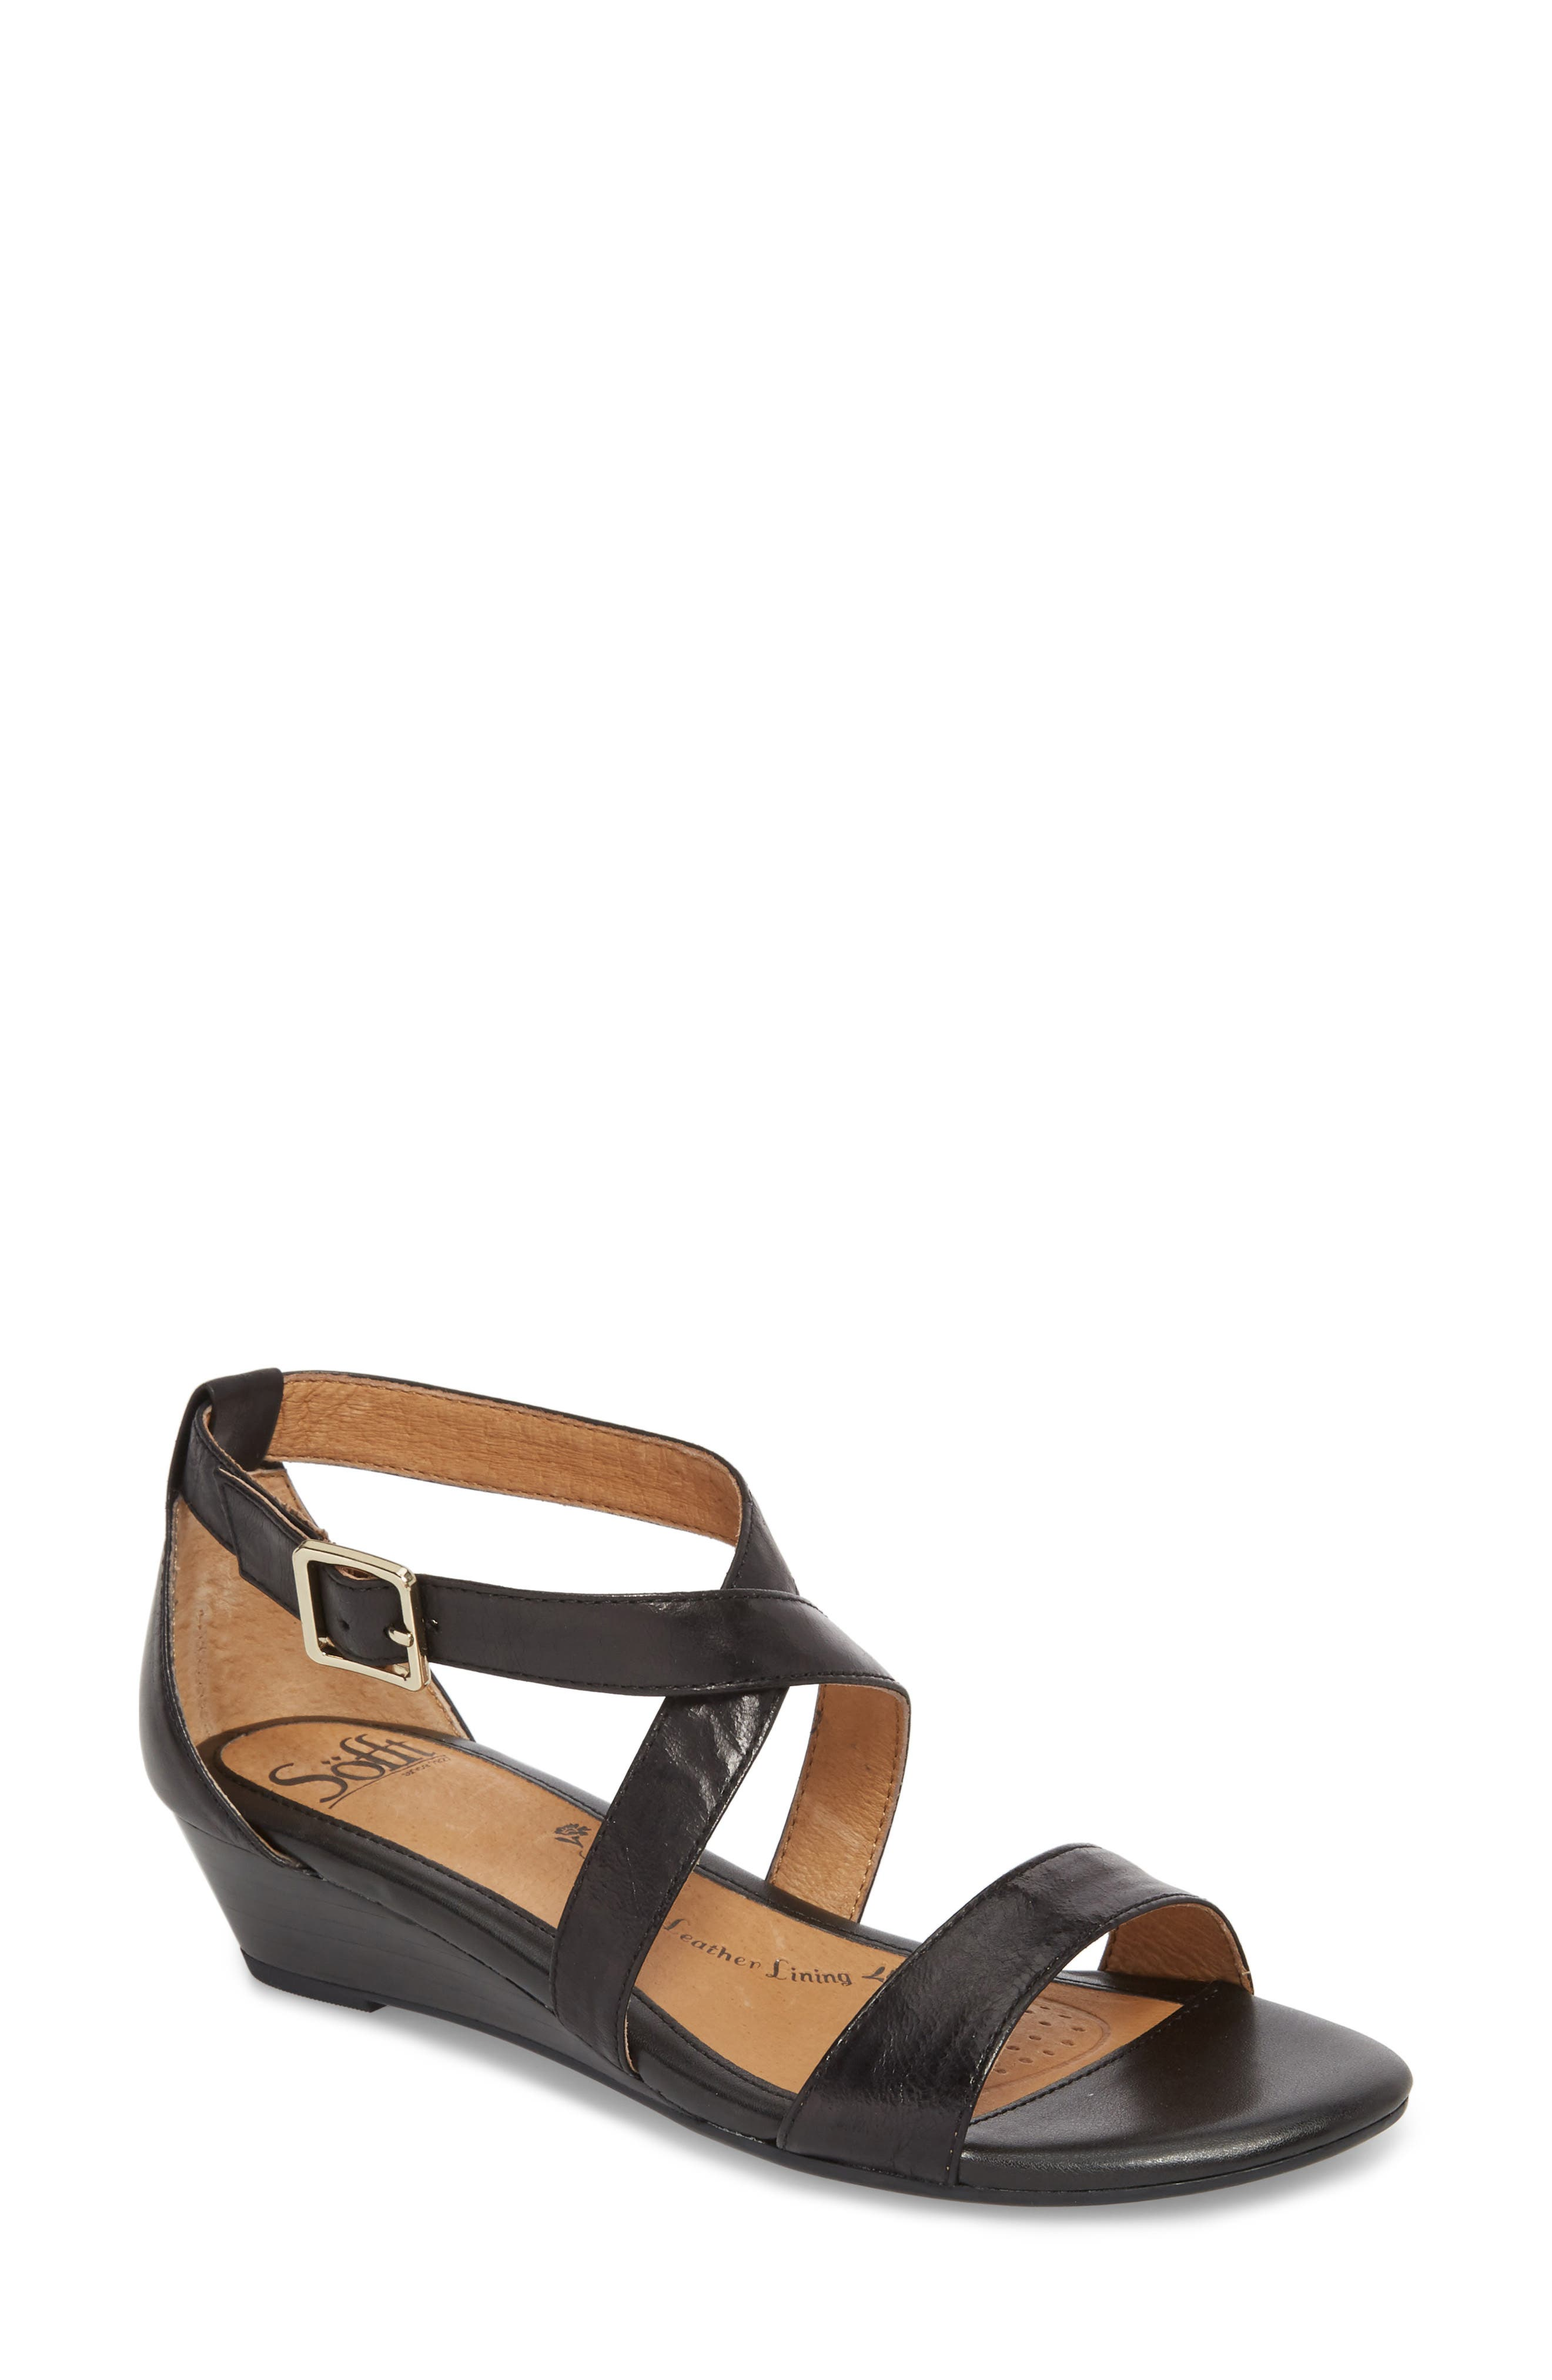 'Innis' Low Wedge Sandal,                             Main thumbnail 1, color,                             Black Leather